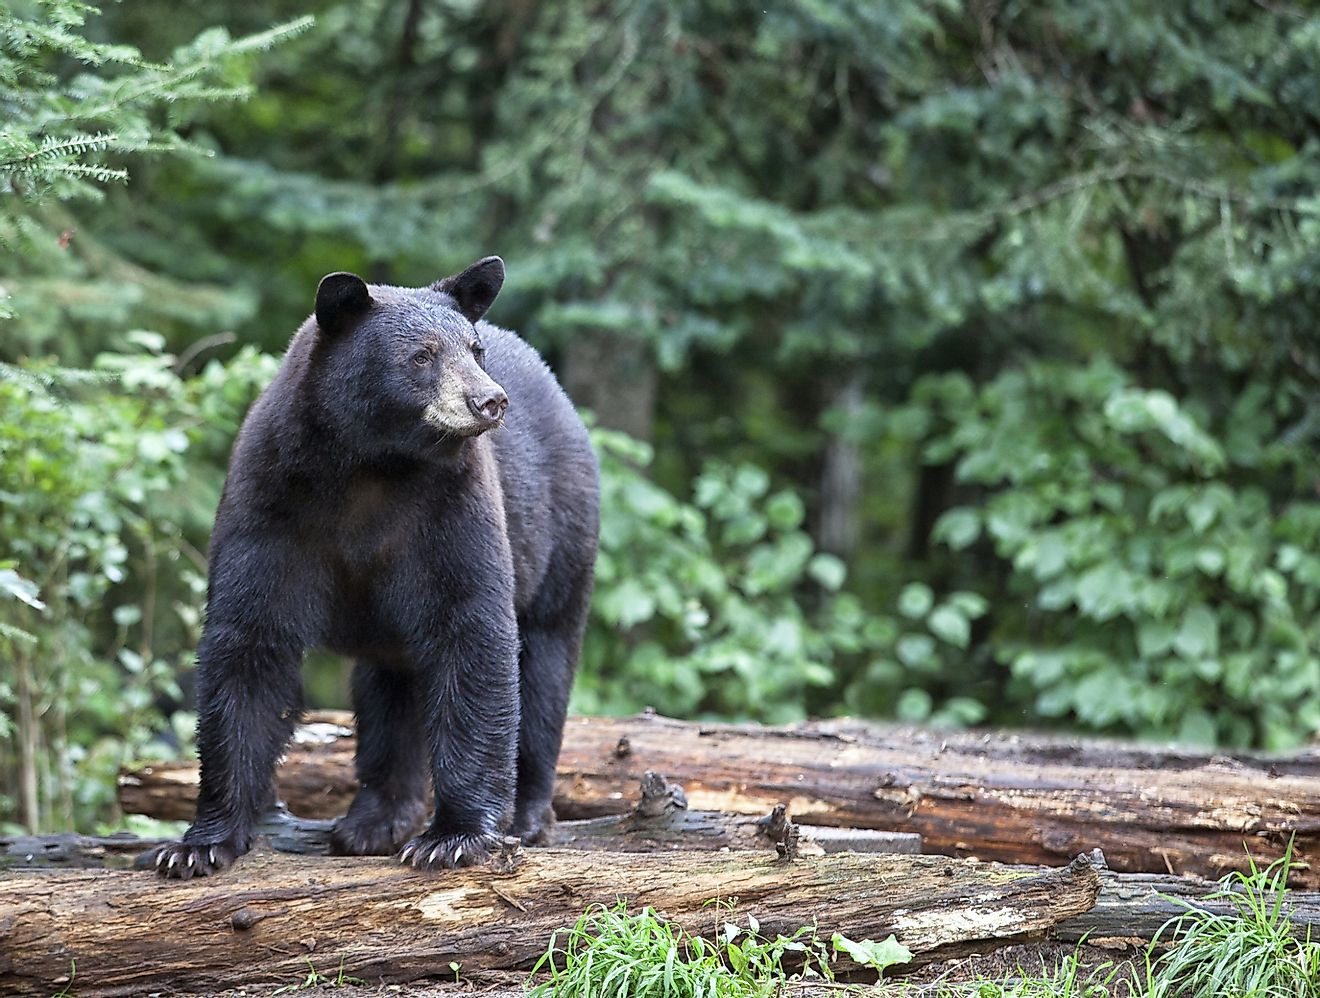 The short tails, ability to run on all fours and stand up, and omnivorous diets of the American Black Bear have often been likened to the abilities of humans.